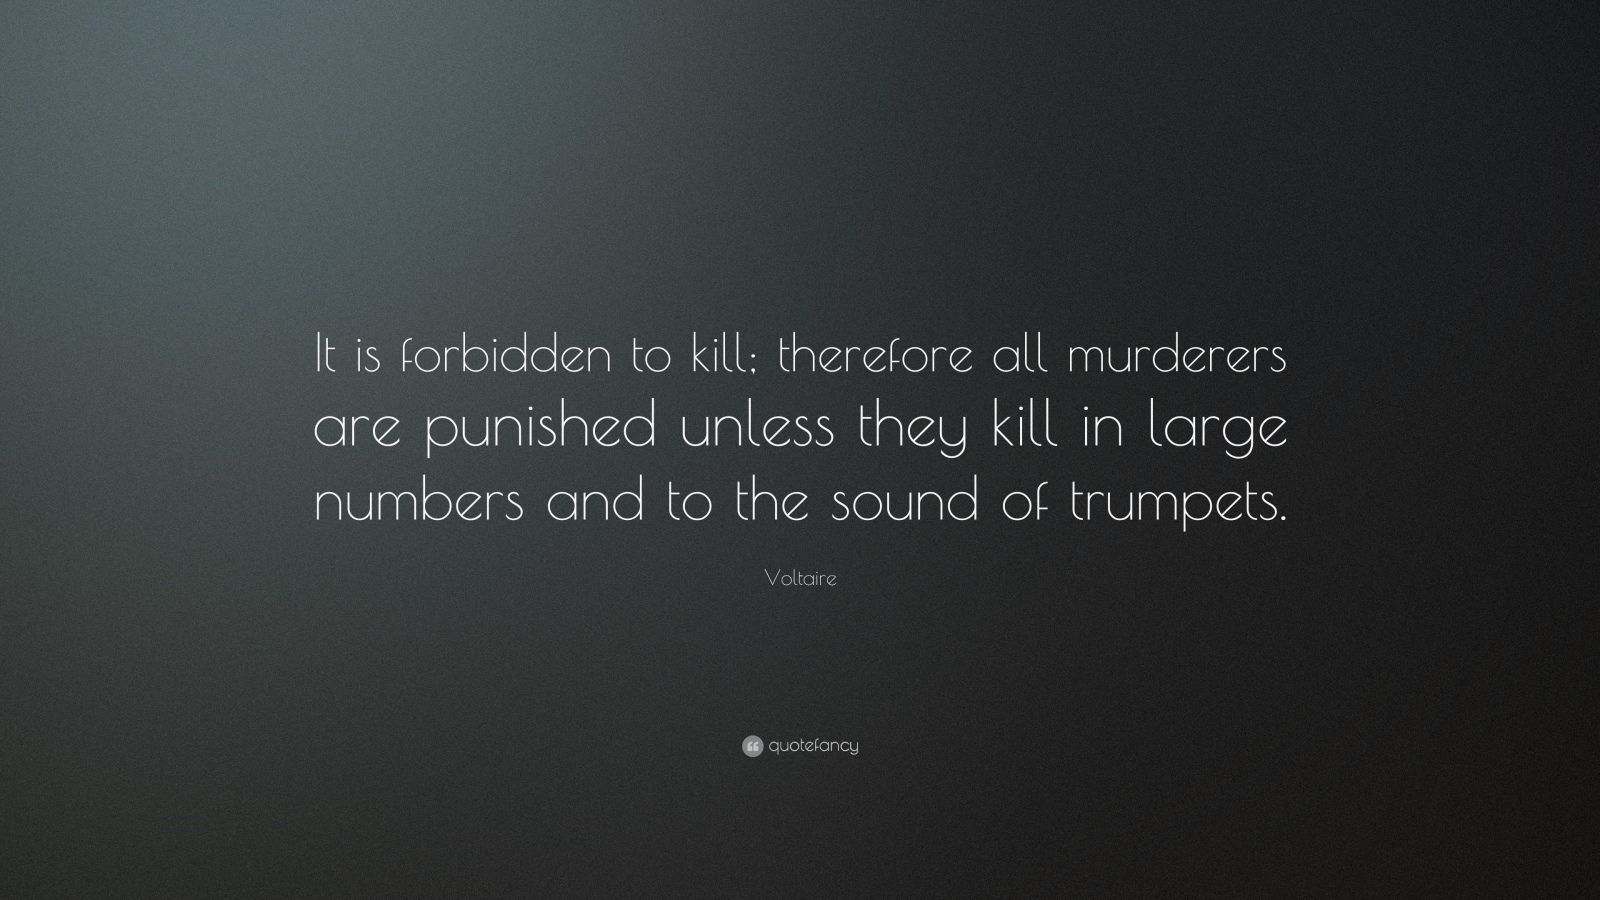 """Voltaire Quote: """"It is forbidden to kill; therefore all murderers are punished unless they kill in large numbers and to the sound of trumpets."""""""